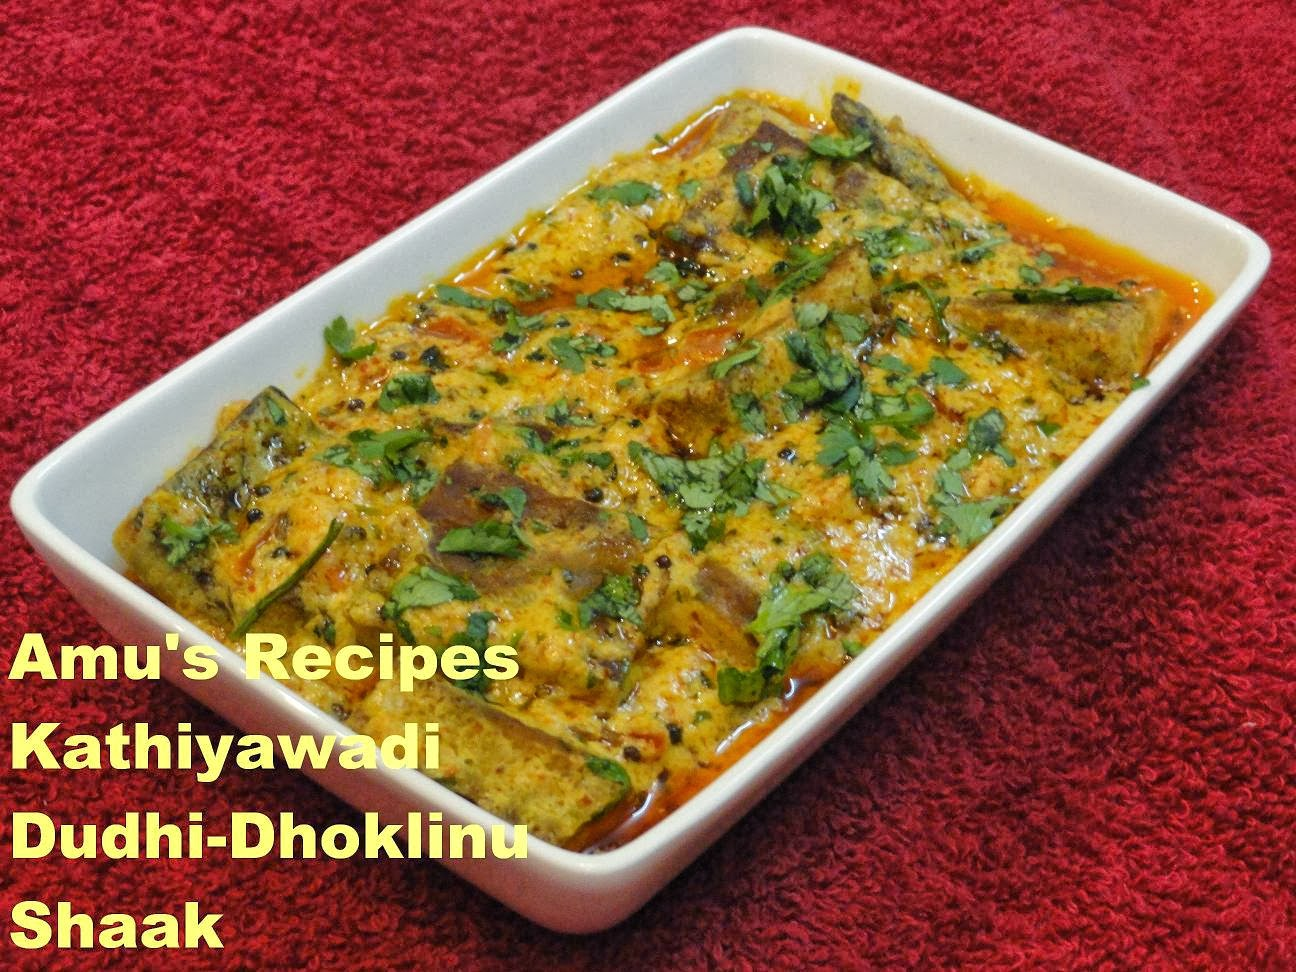 Amus recipes kathiyawadi dudhi dhoklinu shaak forumfinder Image collections